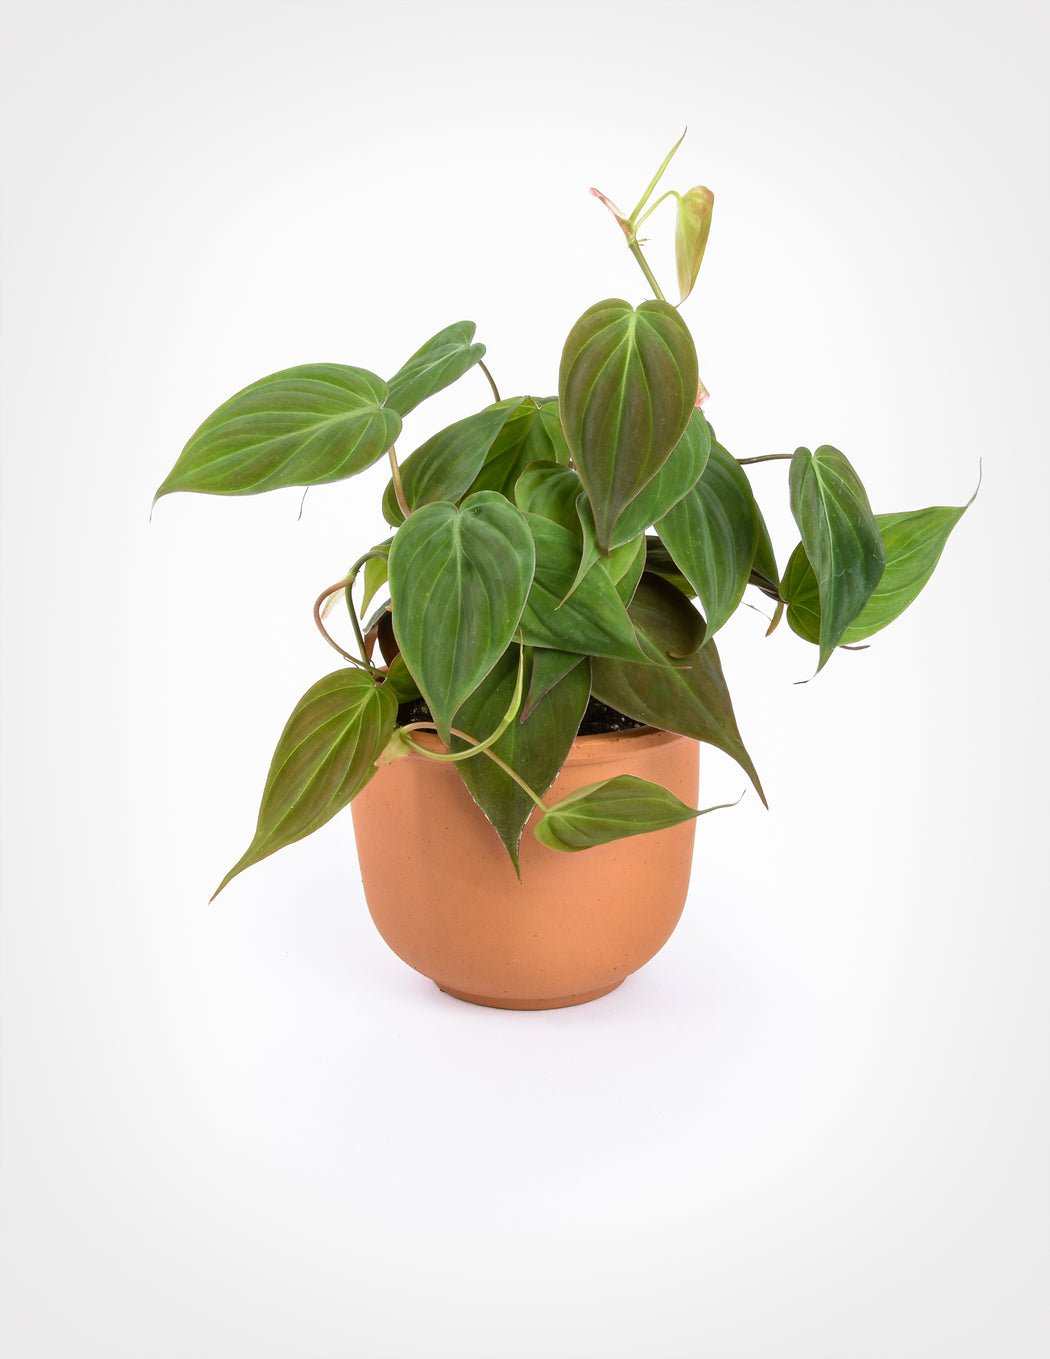 Philodendron Micans Shop Aroids Specimen Plants Pistils Nursery The heart shaped leaves of to get the best out of the 'micans' plant, grow in a hanging basket in bright, indirect sunlight. philodendron micans